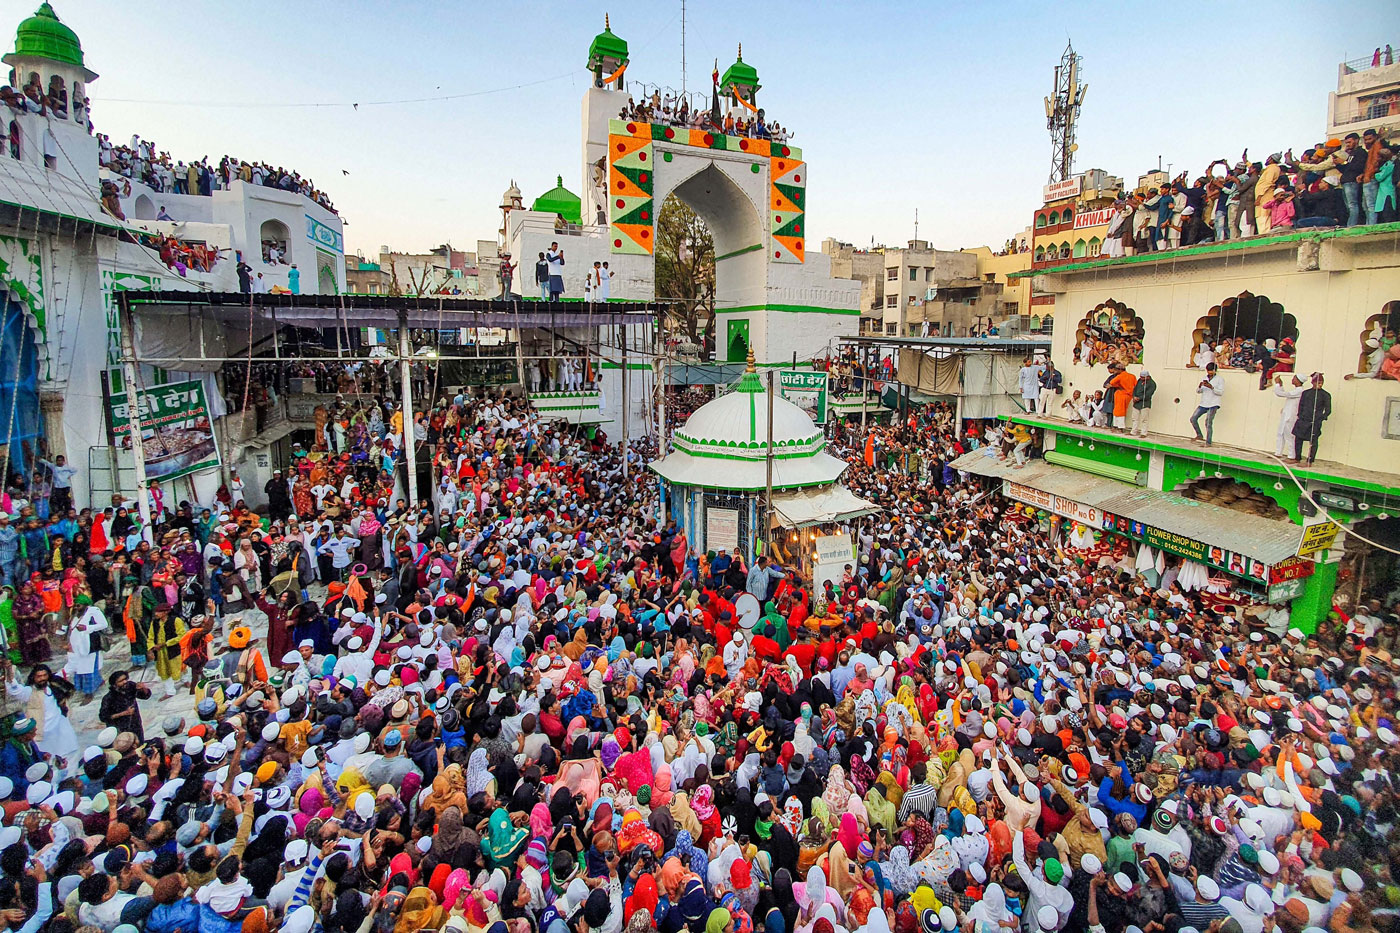 Muslim devotees gather to attend the flag hoisting ceremony ahead of the annual urs at Ajmer dargah in Ajmer, Rajasthan